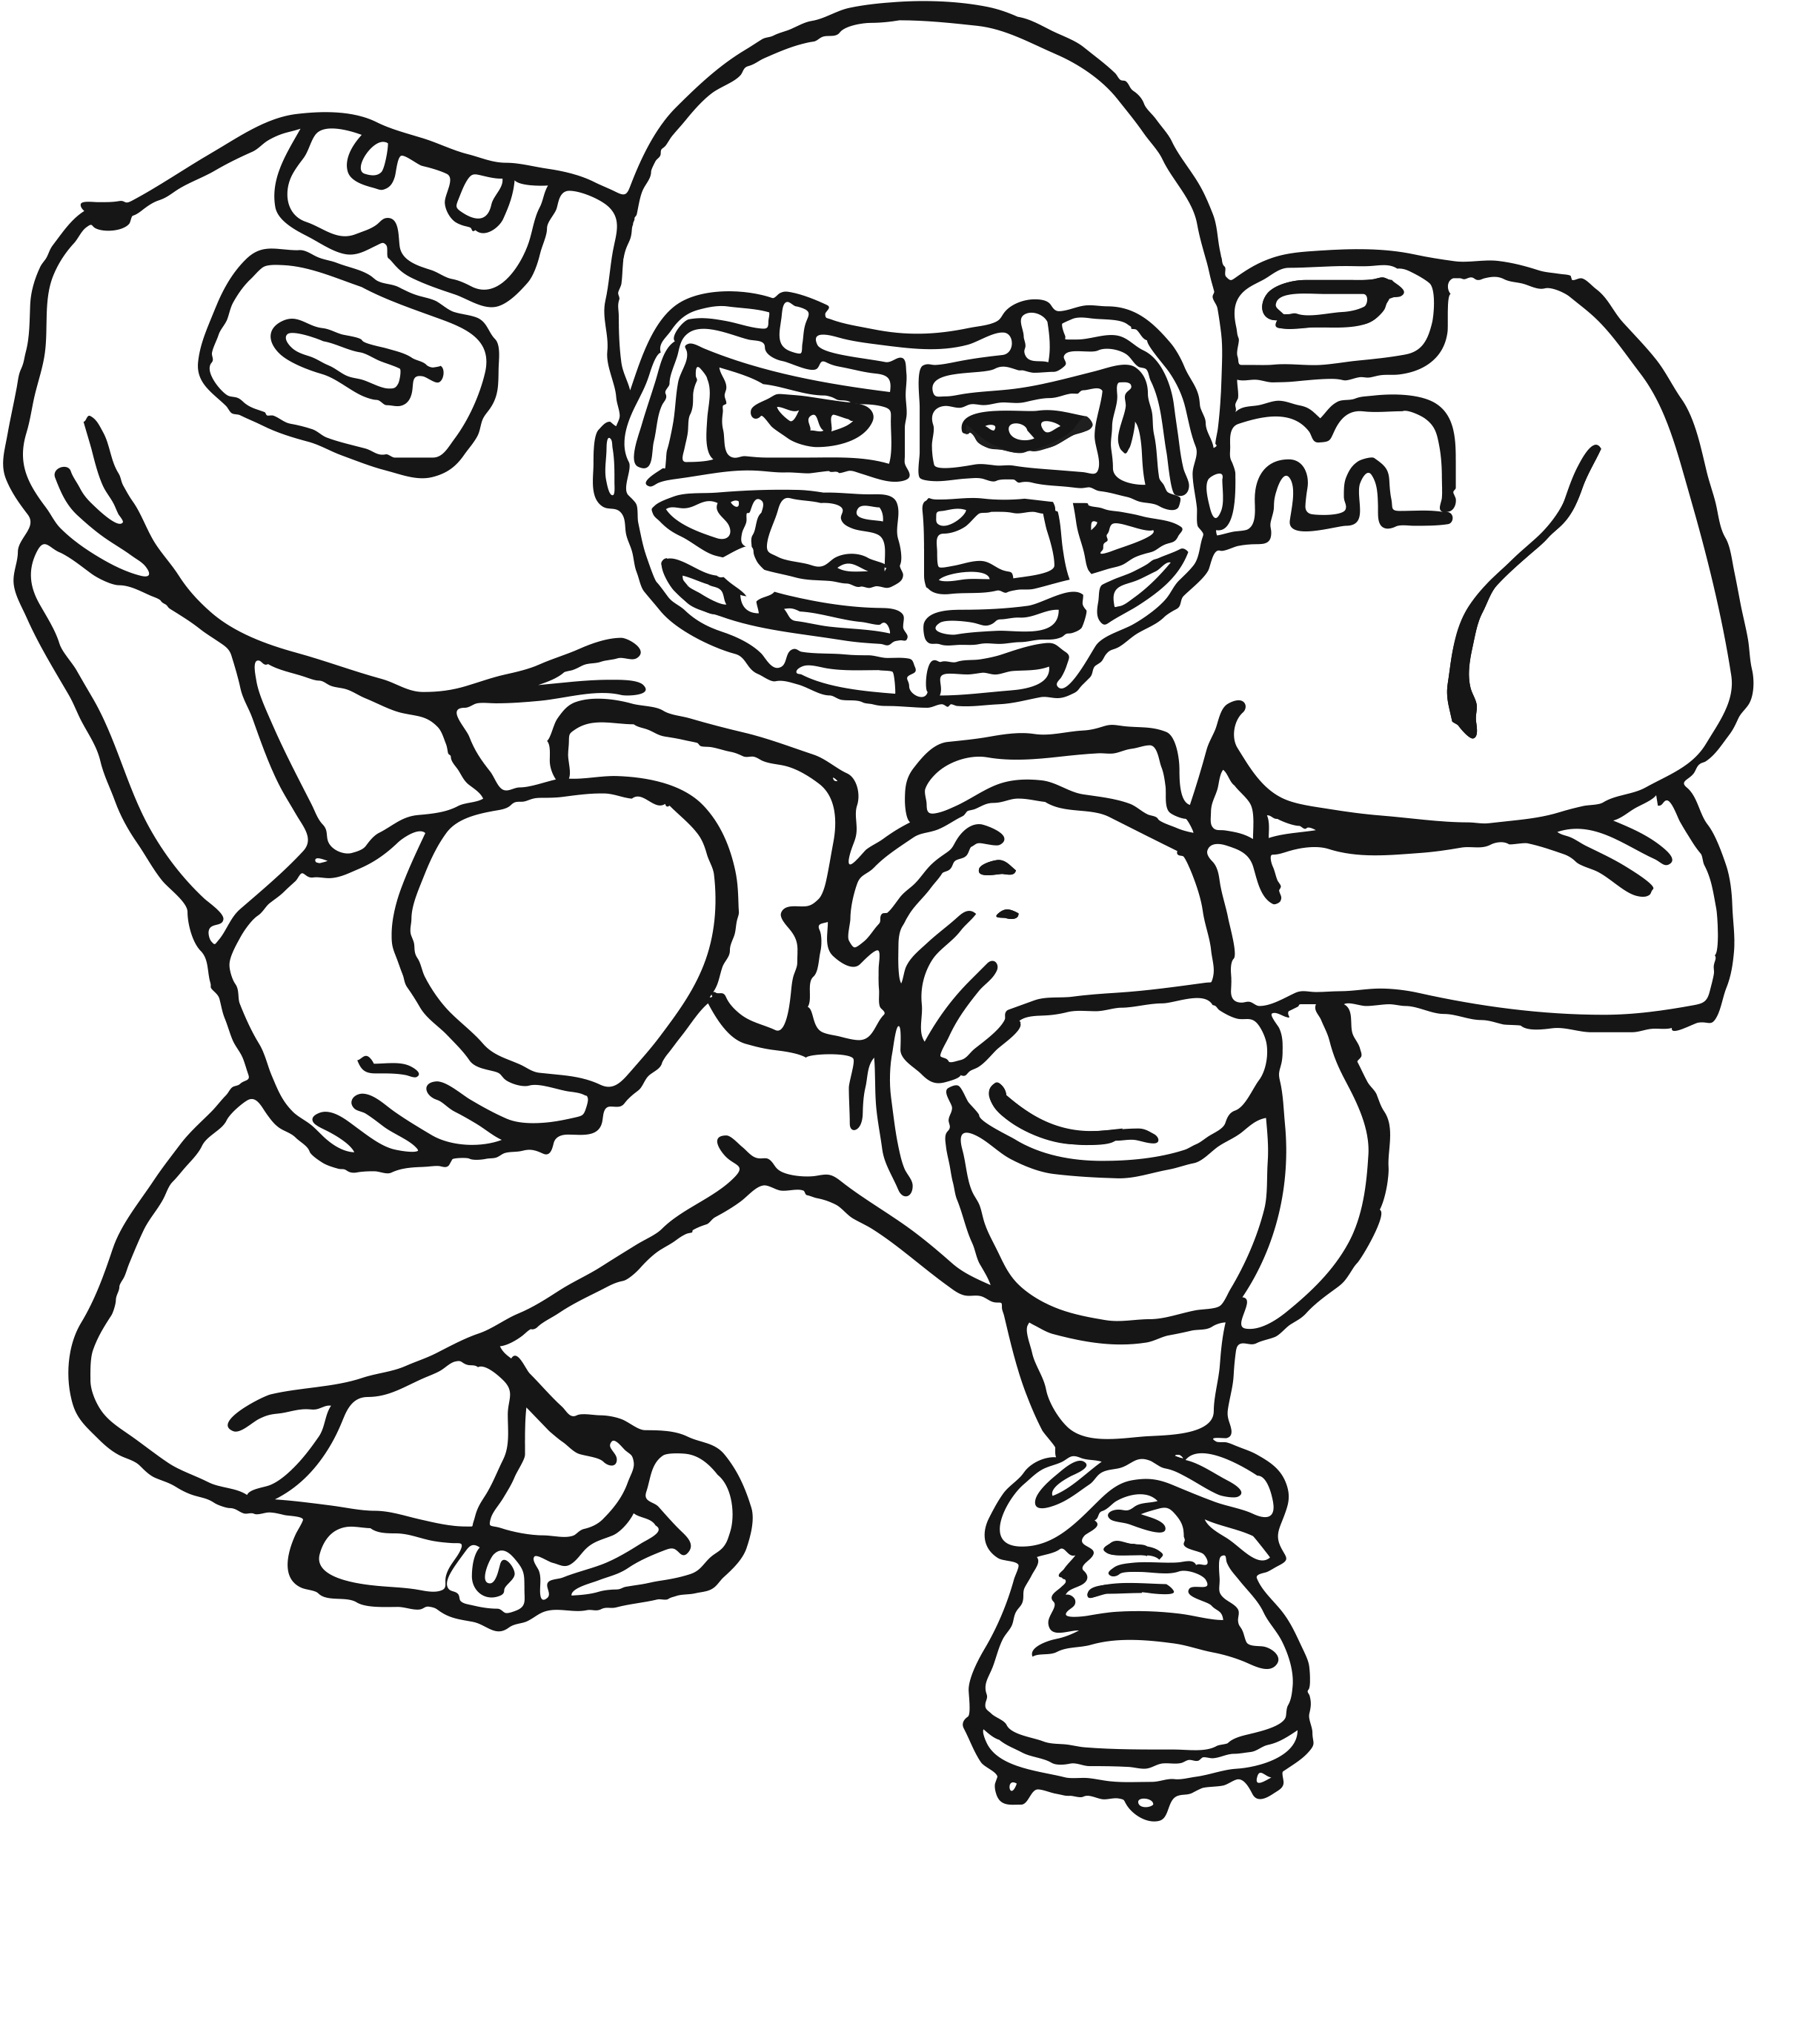 photograph regarding Football Coloring Pages Printable titled Free of charge Printable Soccer Coloring Internet pages for Young children - Excellent